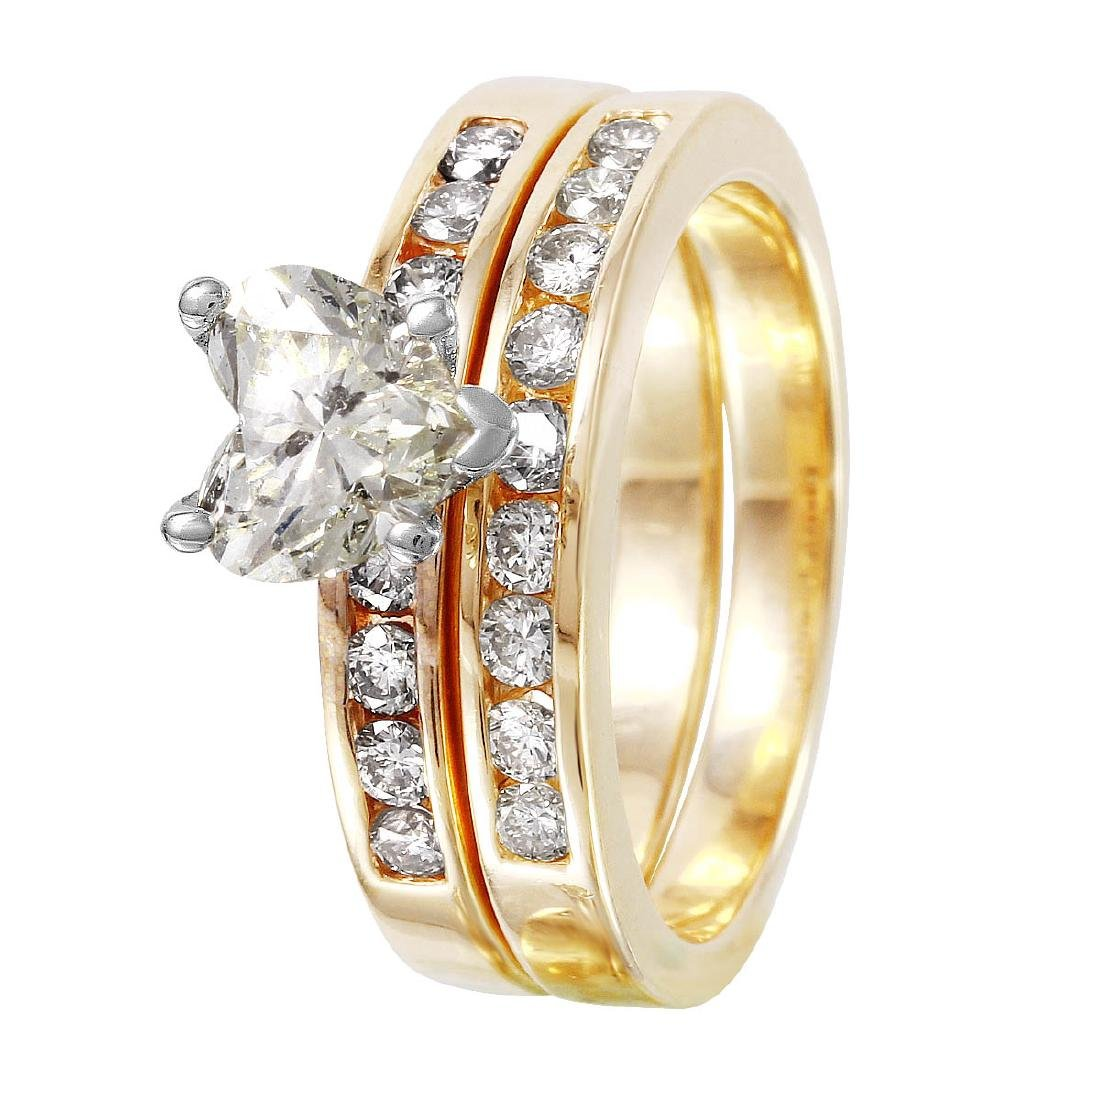 14KT Yellow Gold Diamond Engagement Set